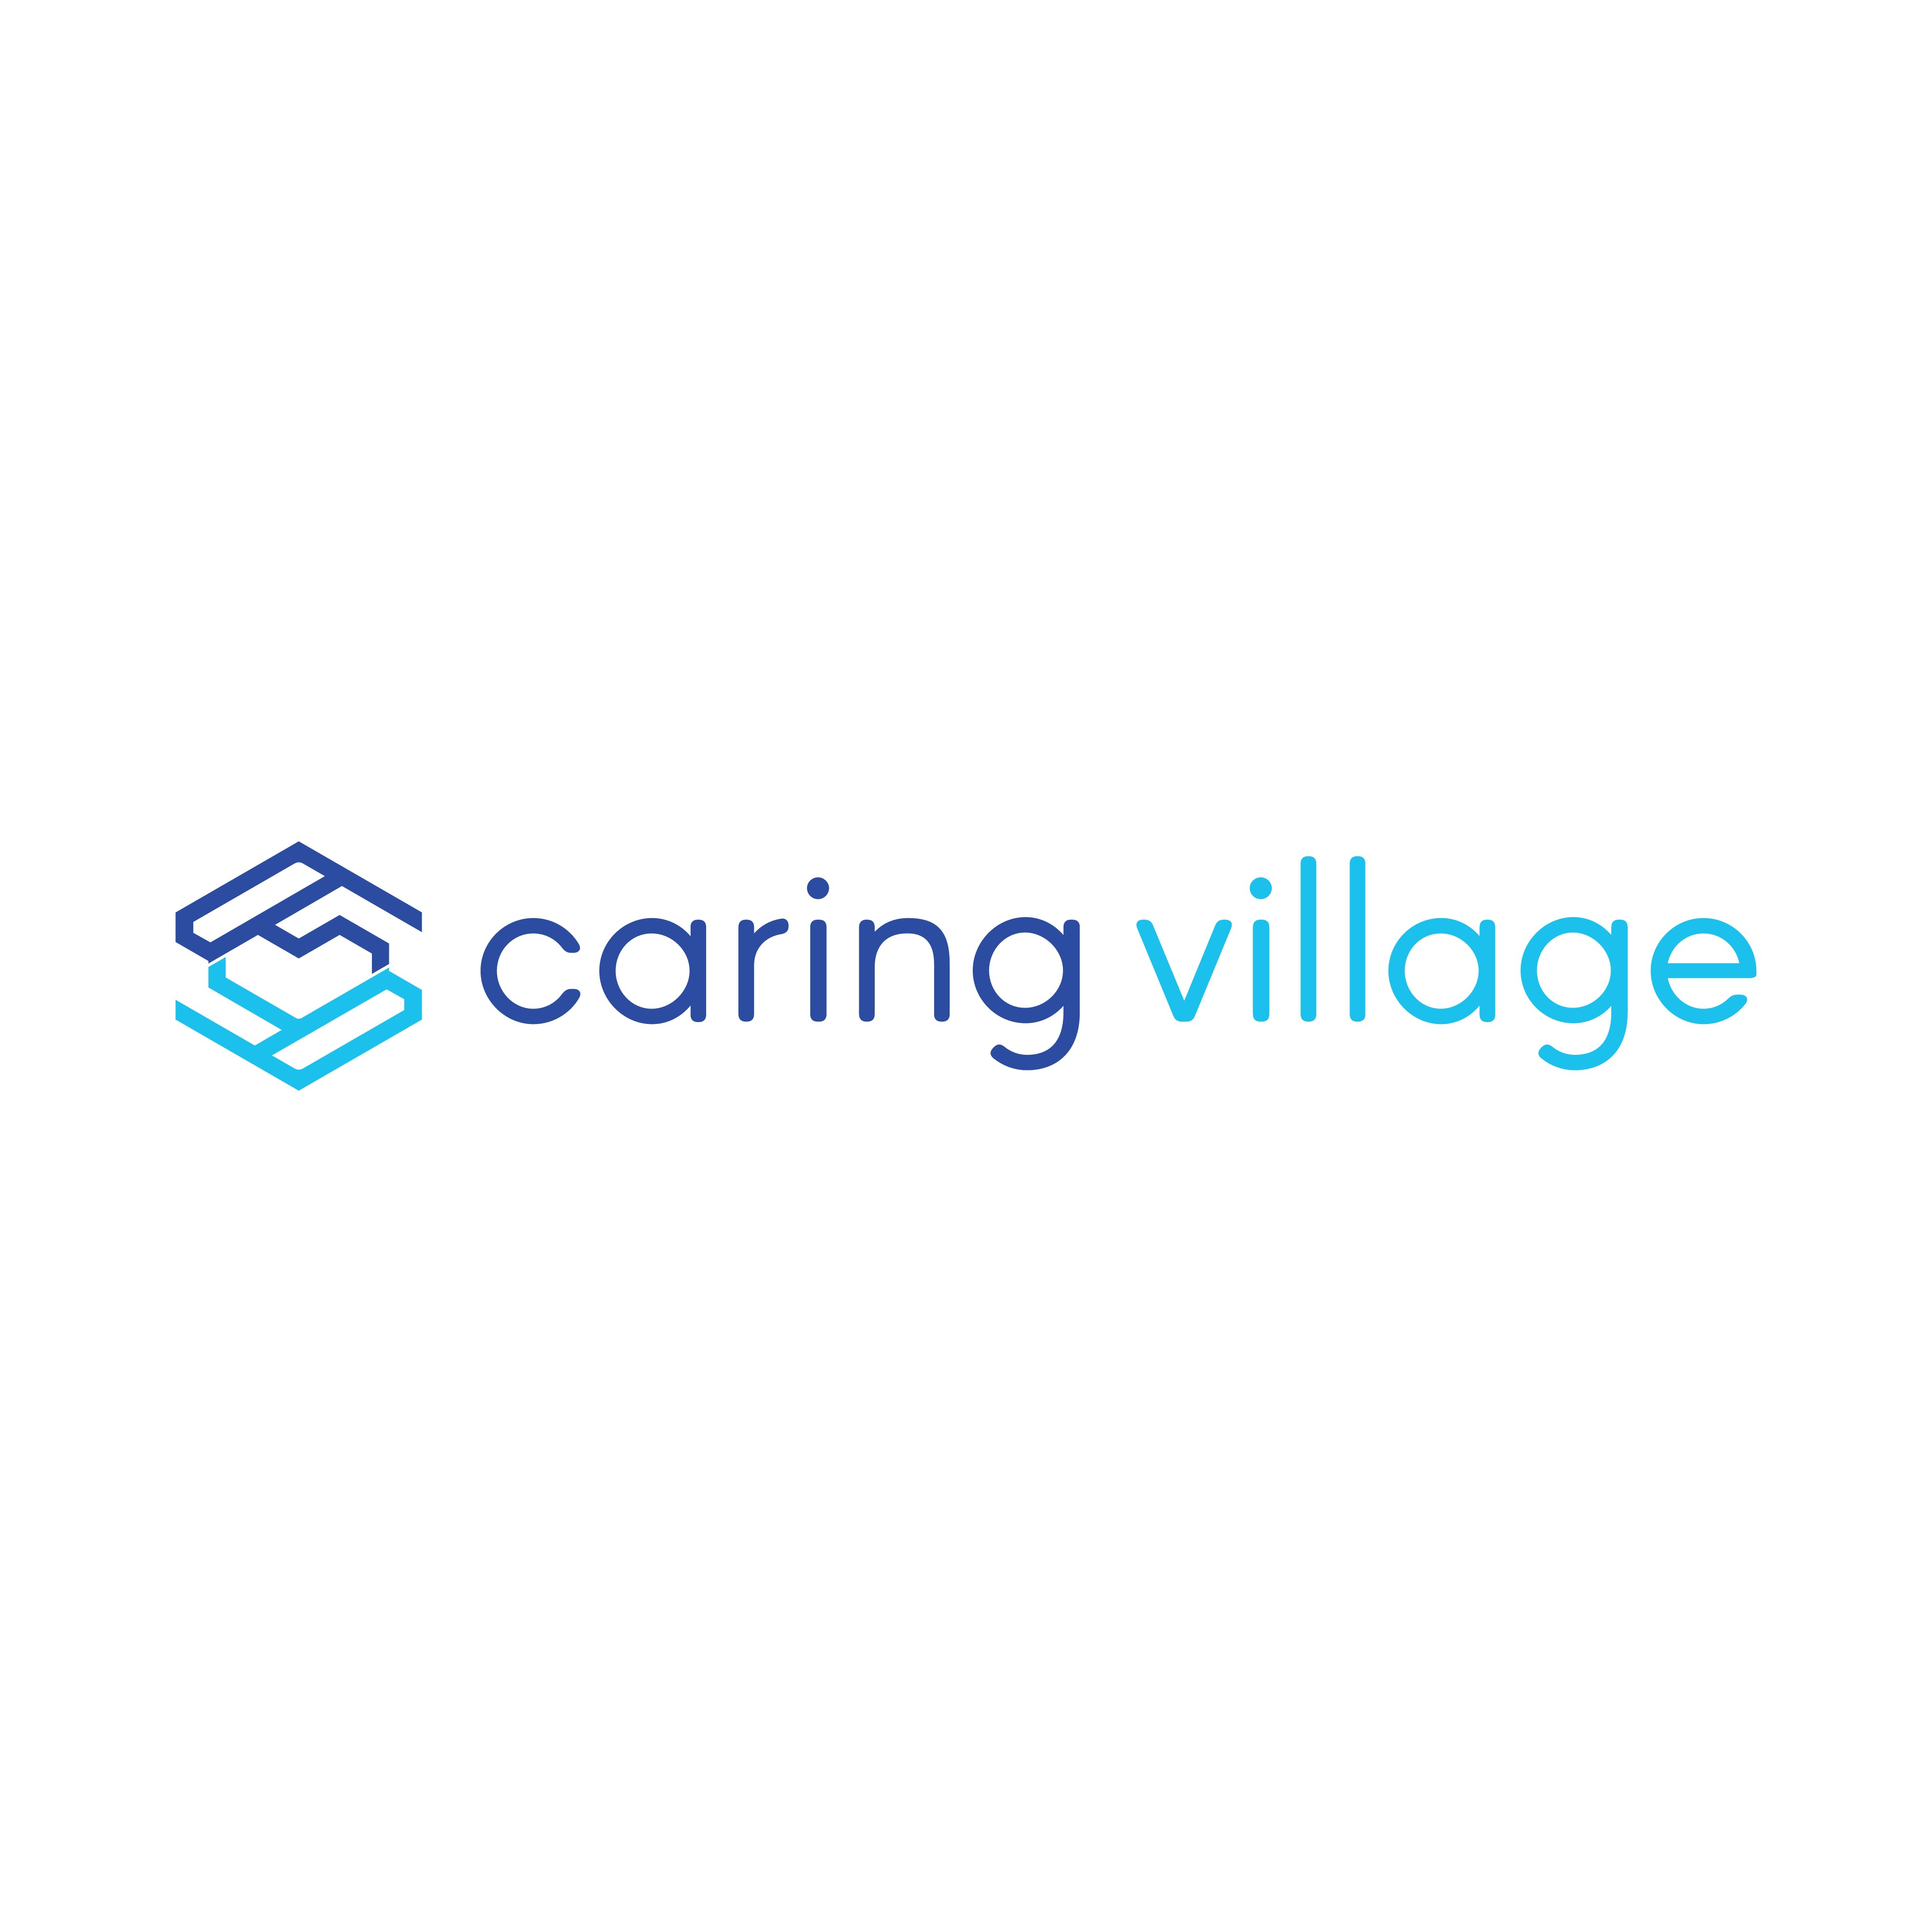 Caring Village is looking for a logo that speaks to our users!